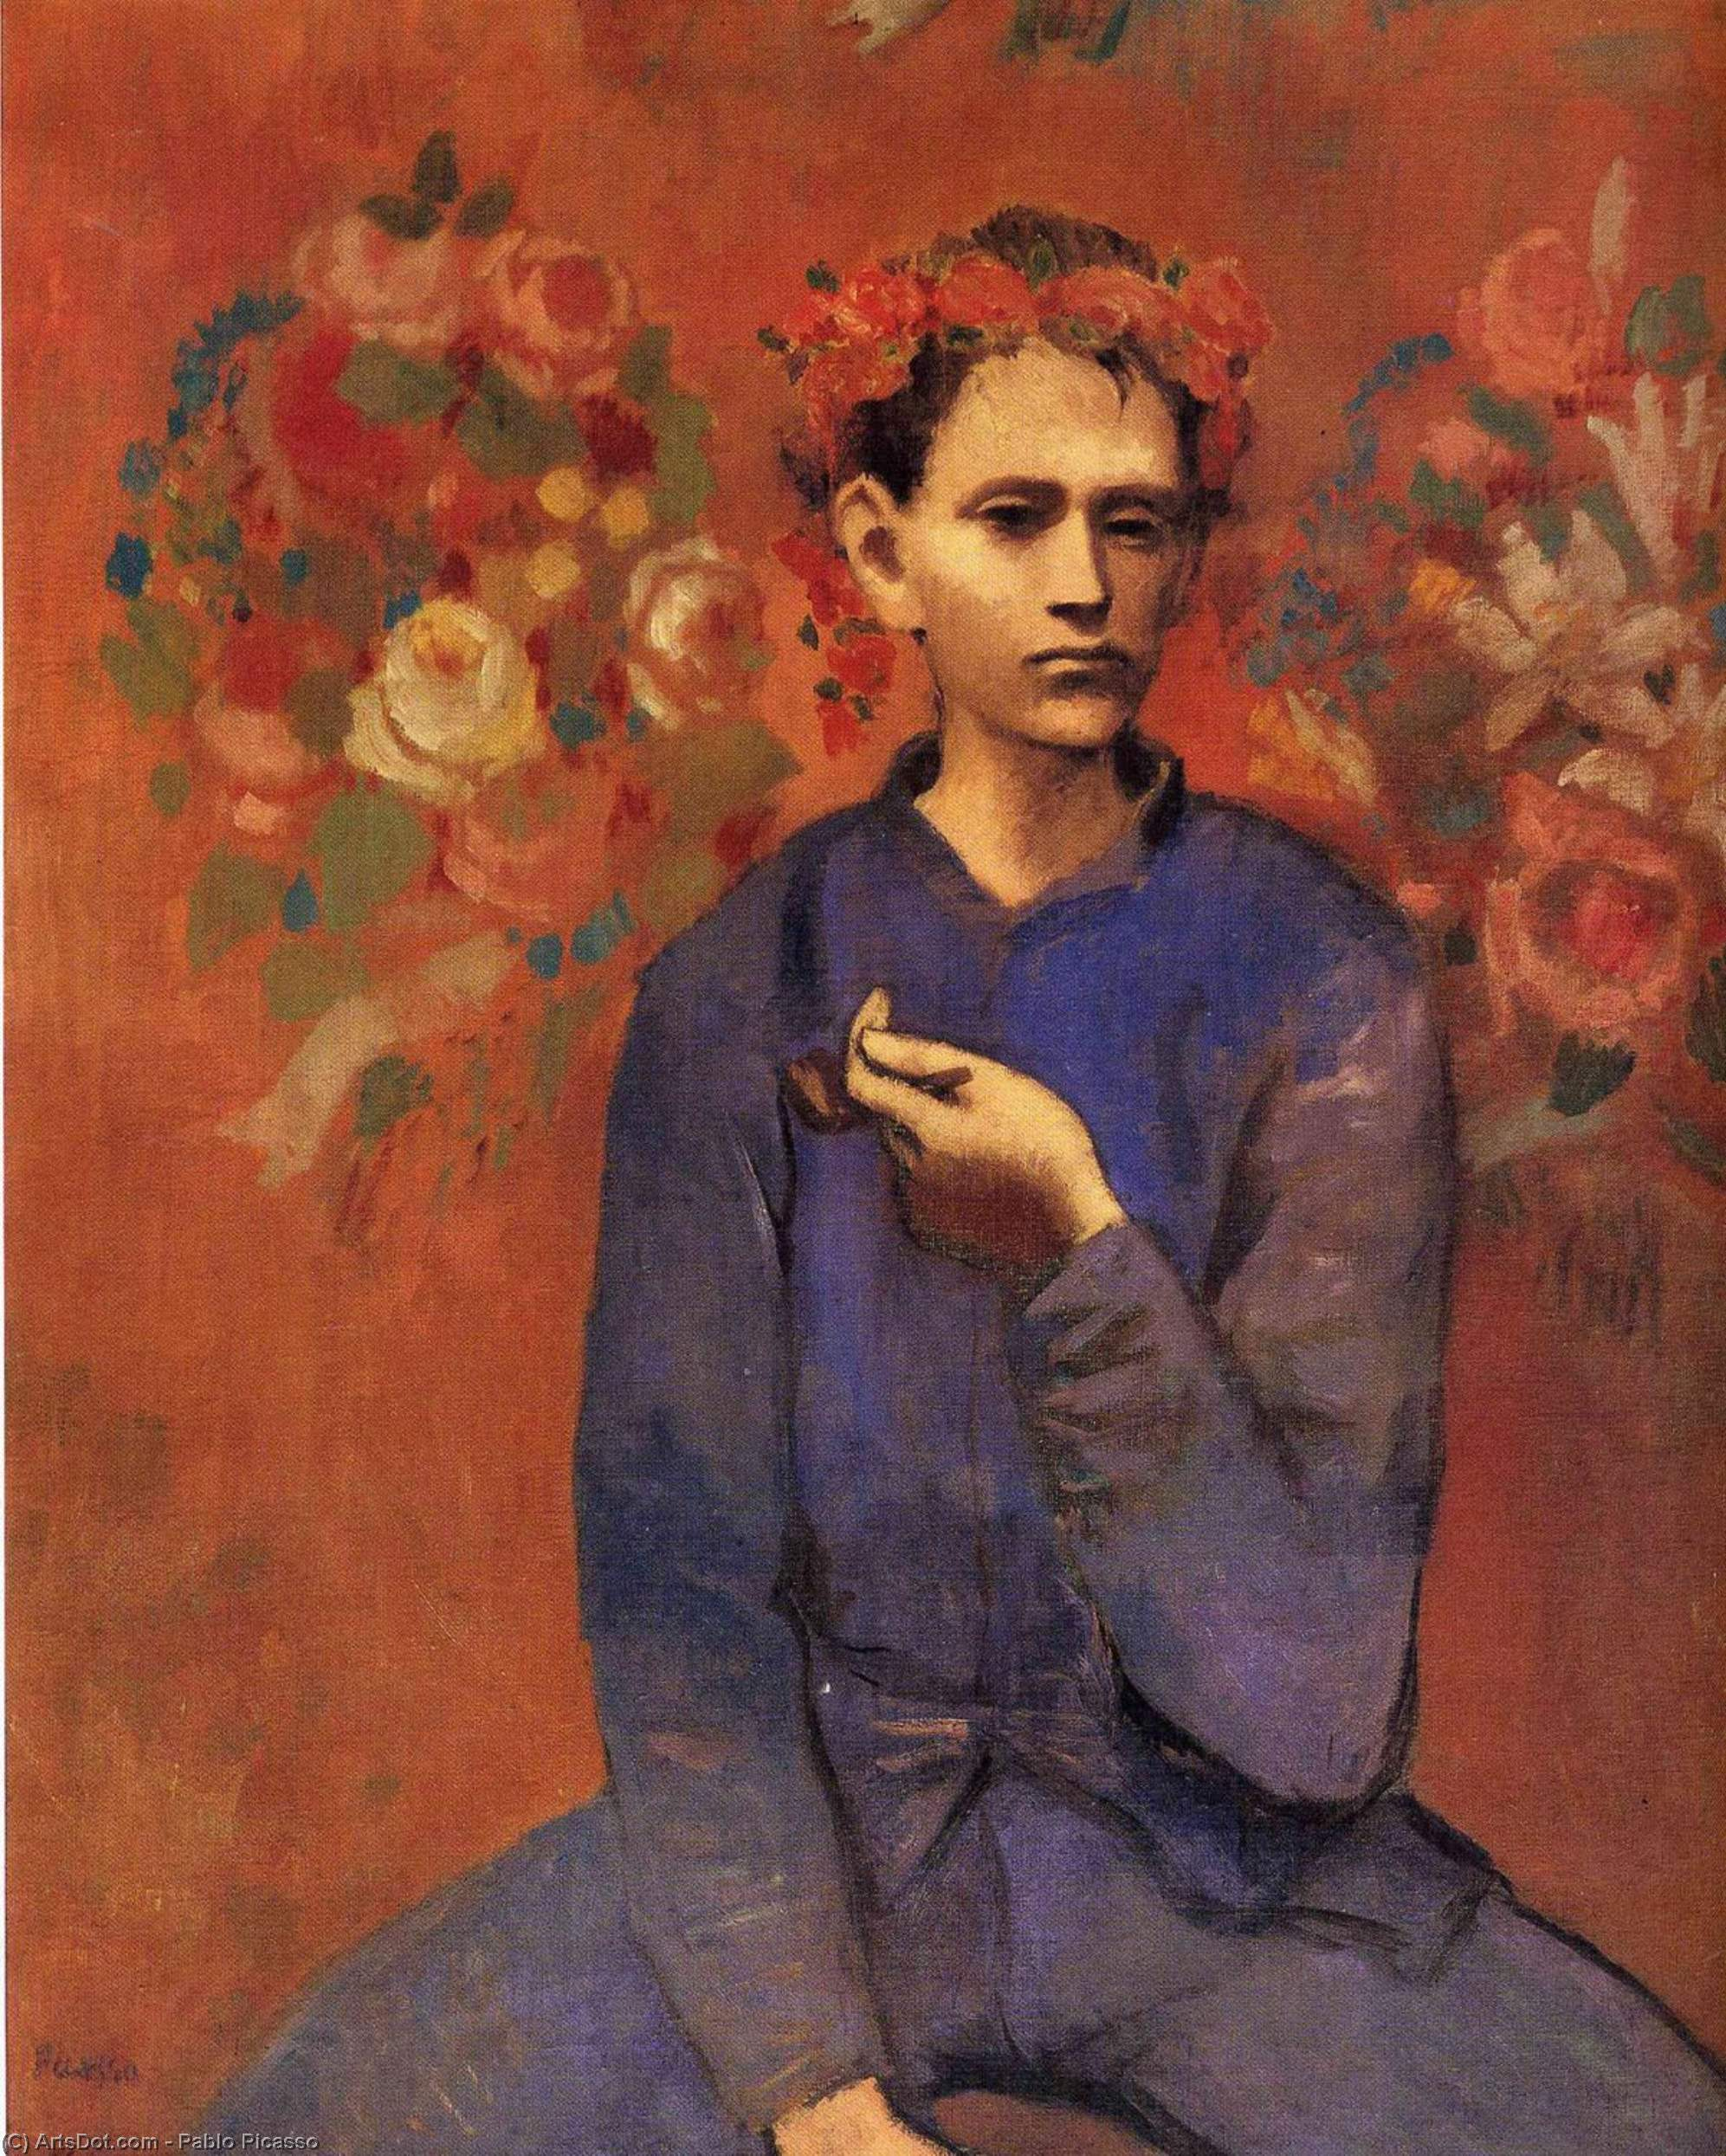 Wikioo.org - The Encyclopedia of Fine Arts - Painting, Artwork by Pablo Picasso - A boy with pipe